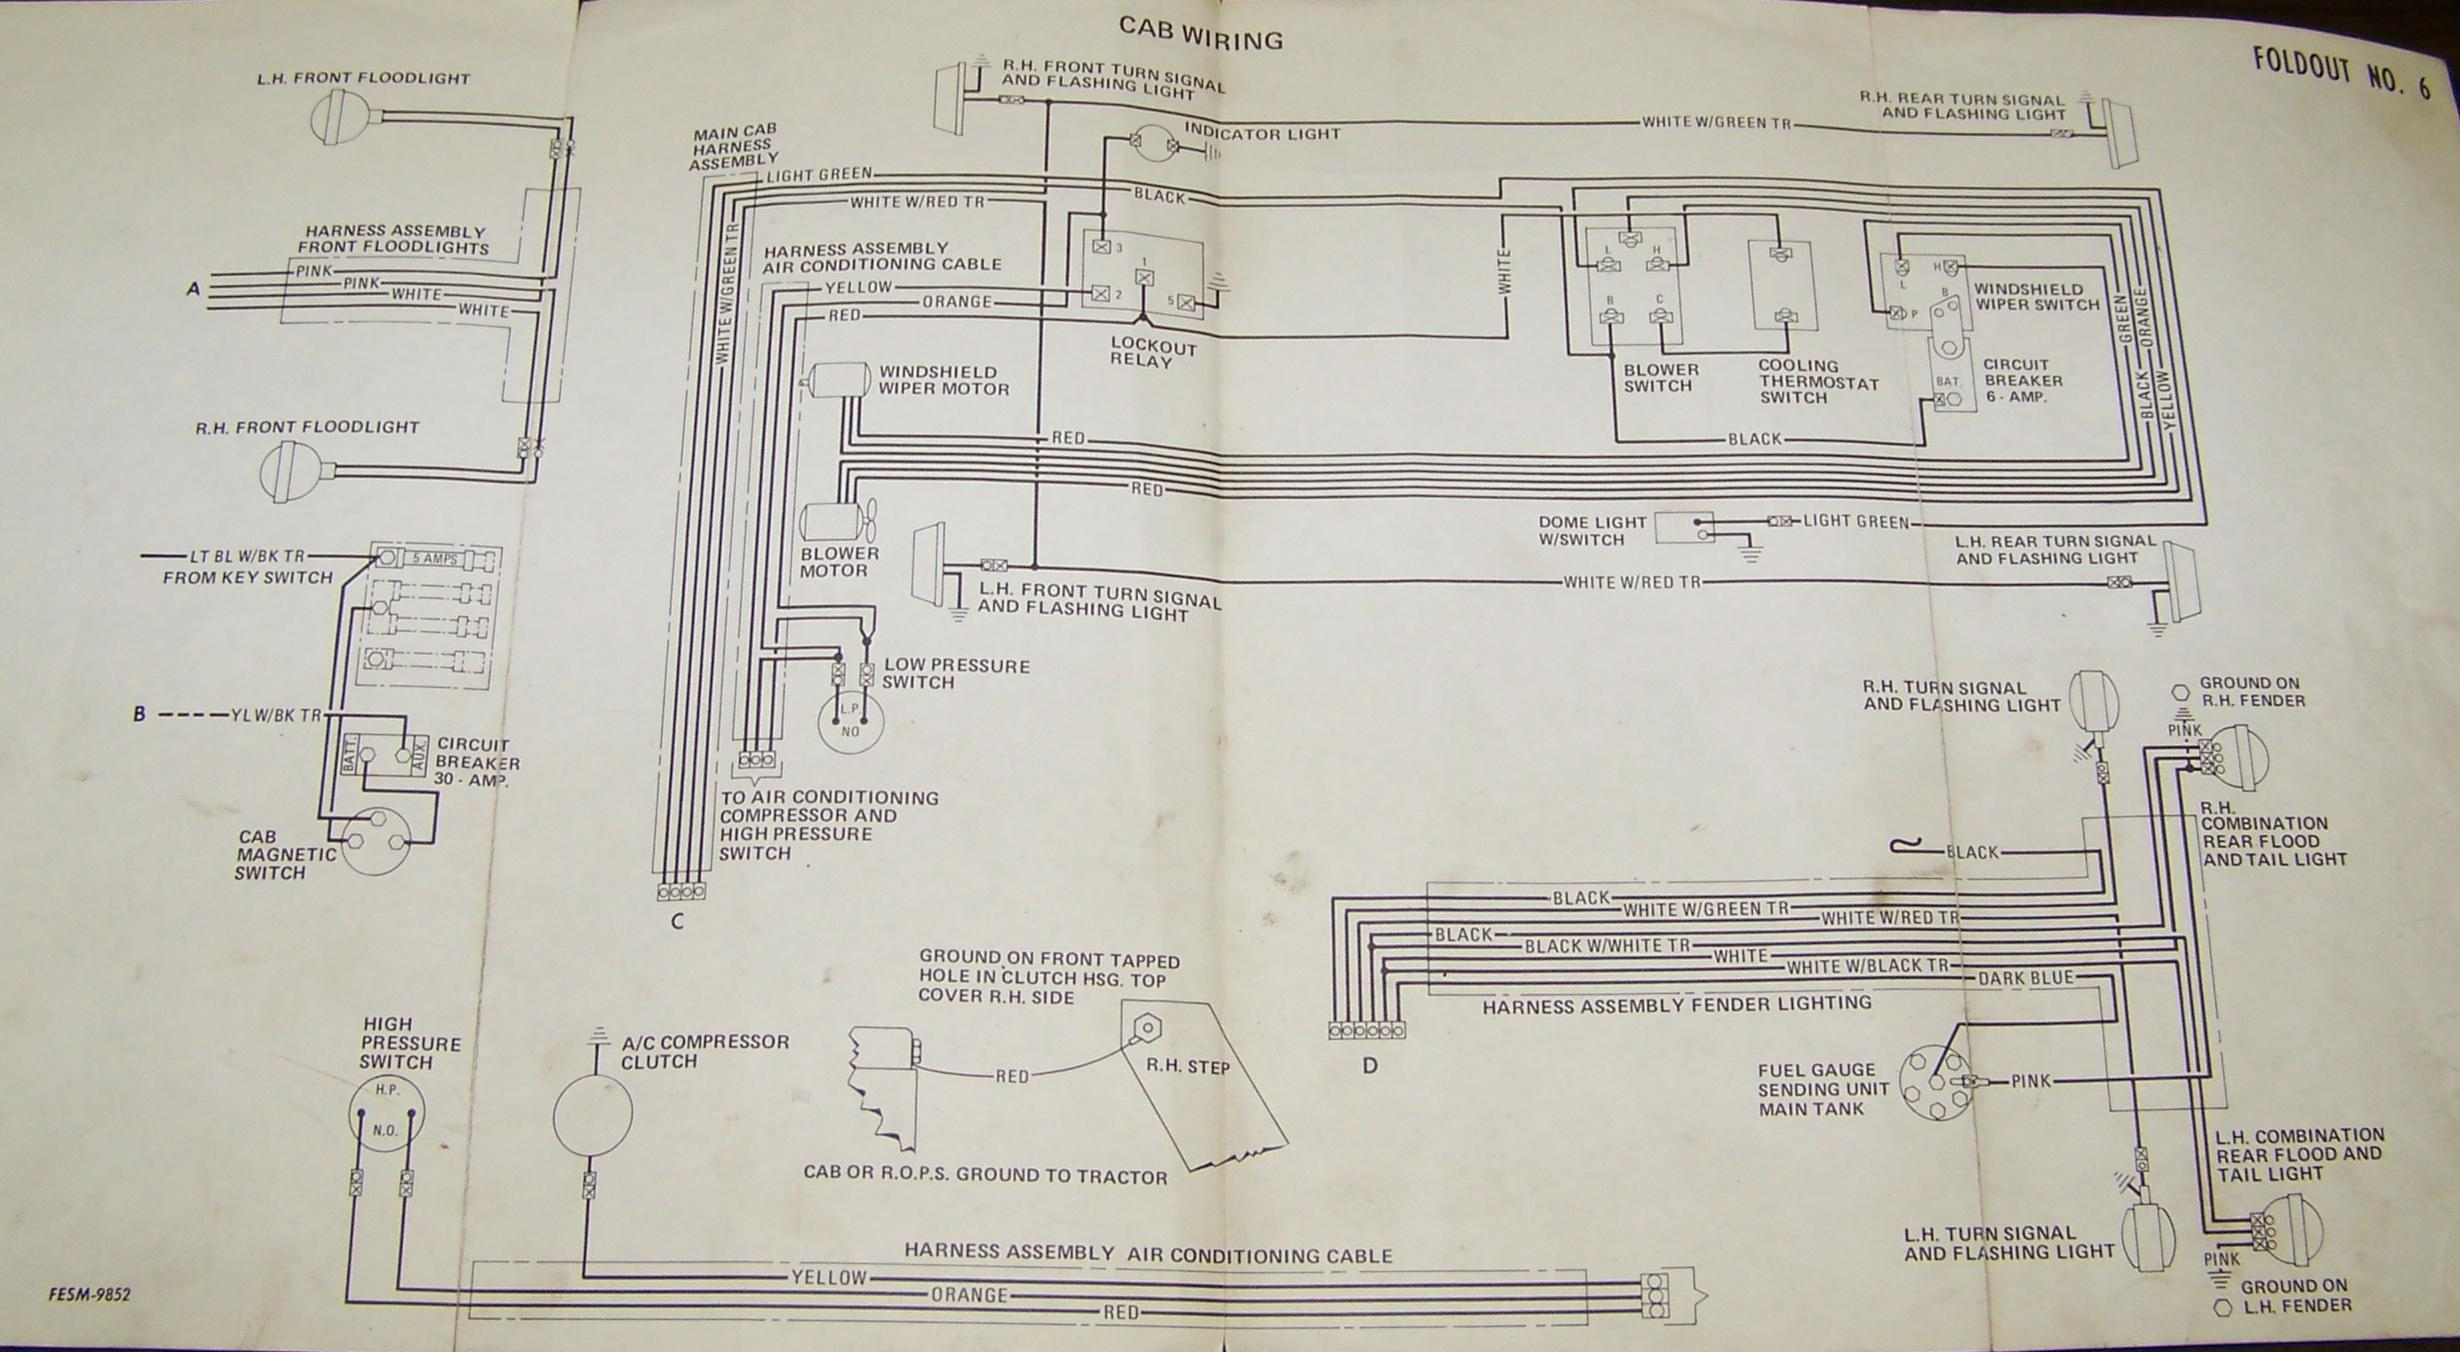 86series6 carter & gruenewald co inc ih farmall tractor electrical wiring diagram for 1086 international tractor at panicattacktreatment.co